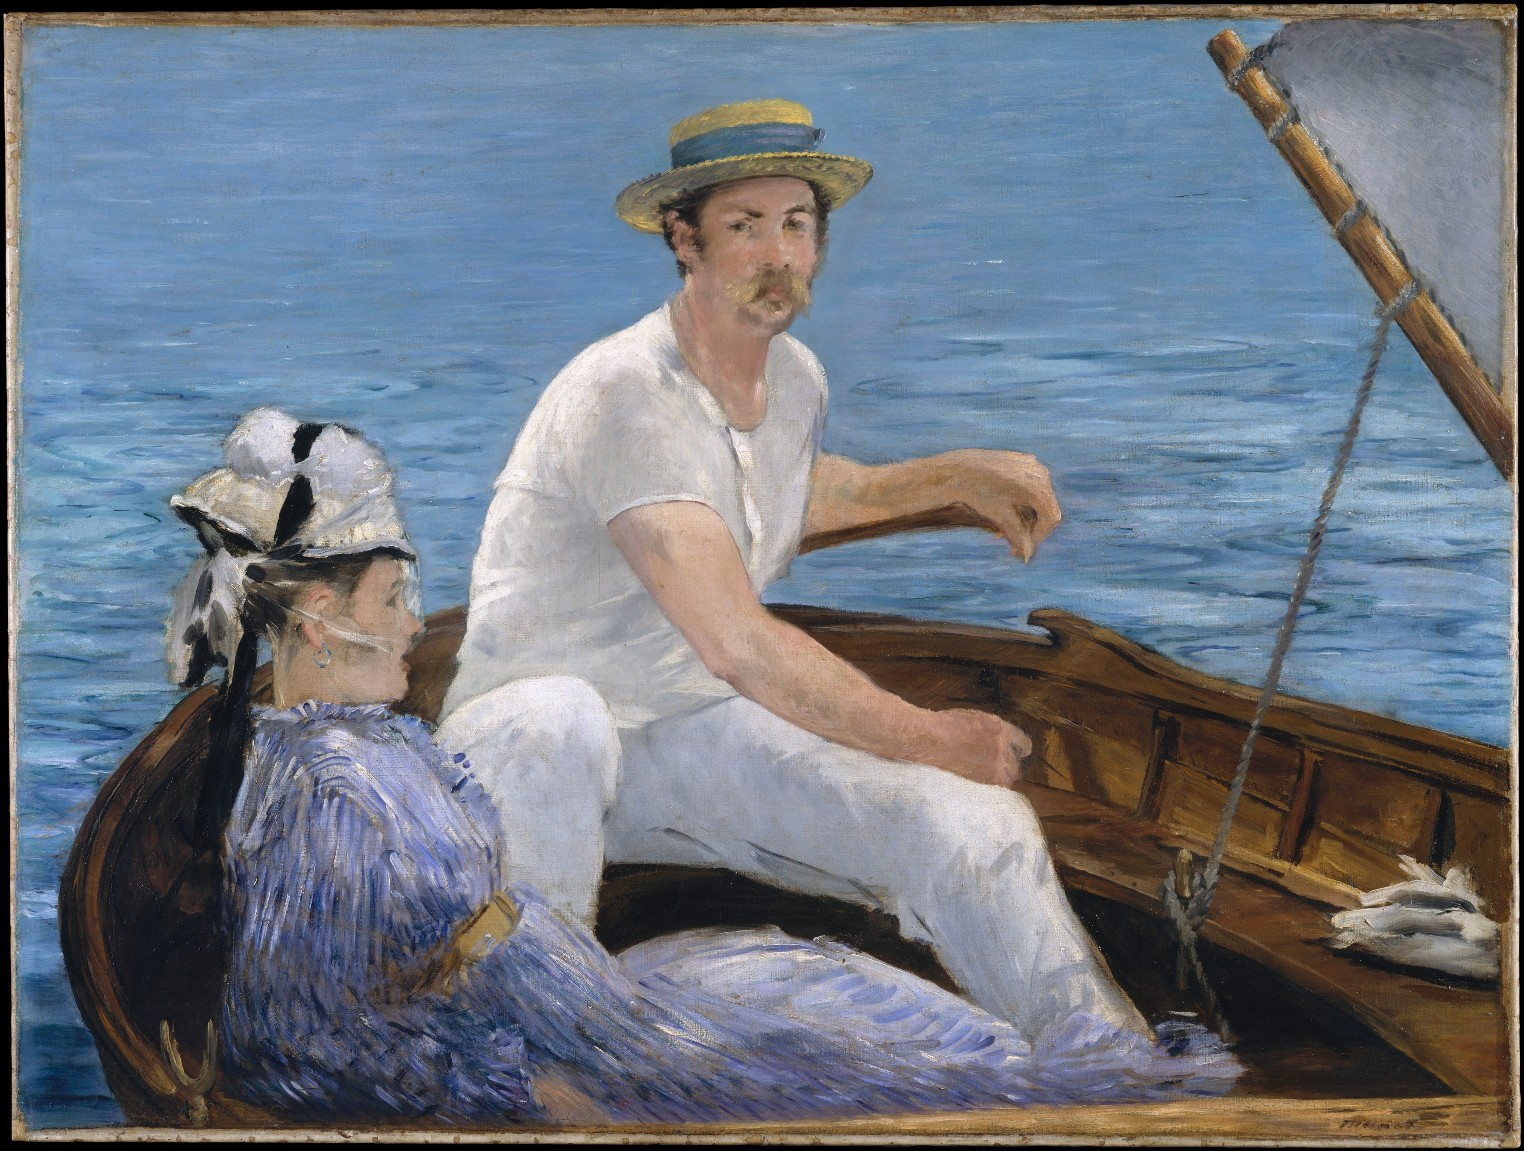 """"""" Masterpieces of European Painting, 1800-1920, in the Metropolitan Museum of Art """". Edouard Manet, """"In barca ad Argenteuil"""", 1874"""